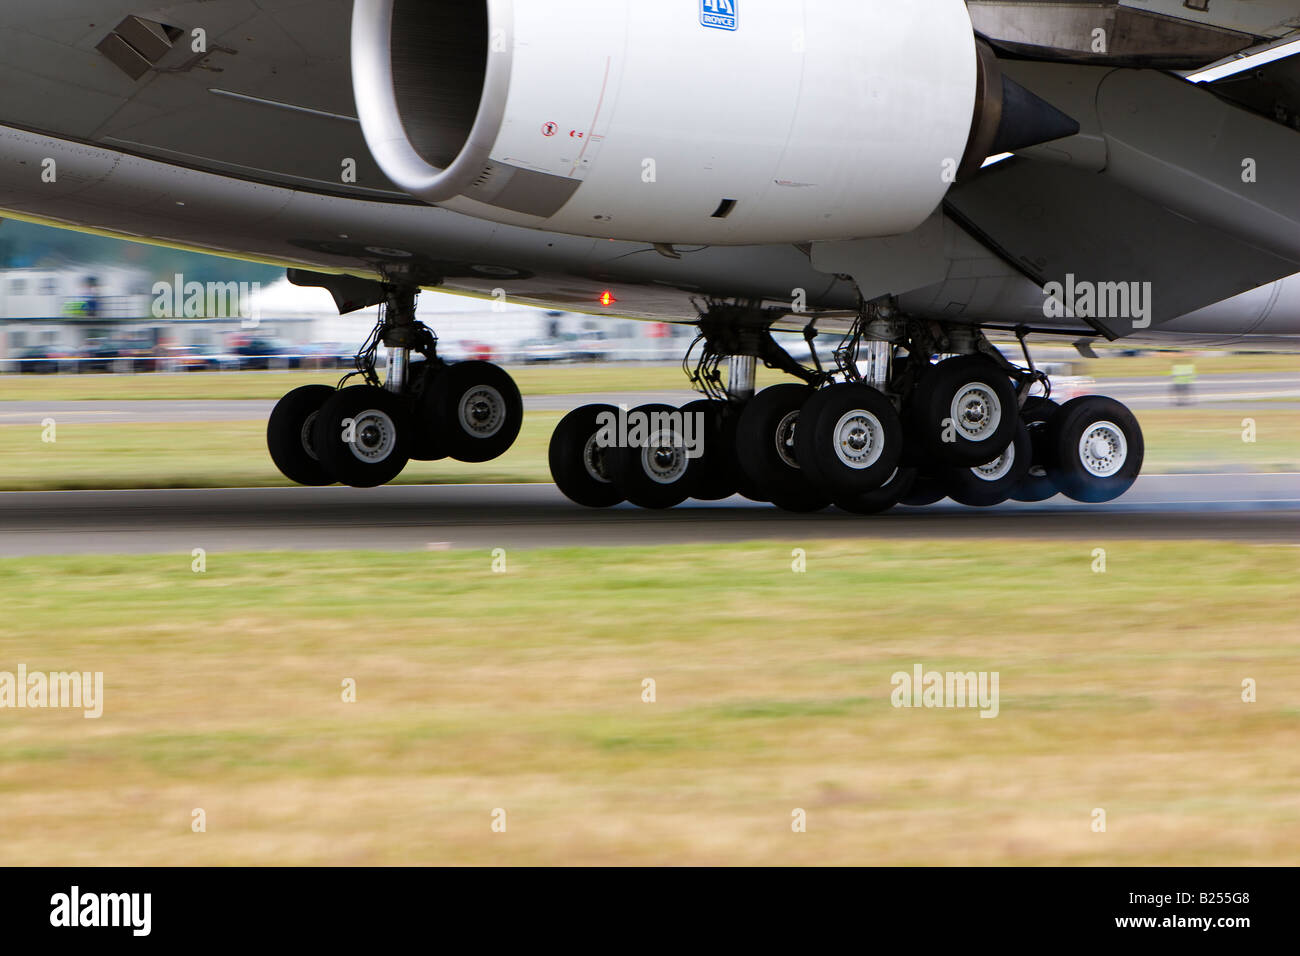 Airbus A380 Undercarriage Large aircraft Gear Copy Space - Stock Image